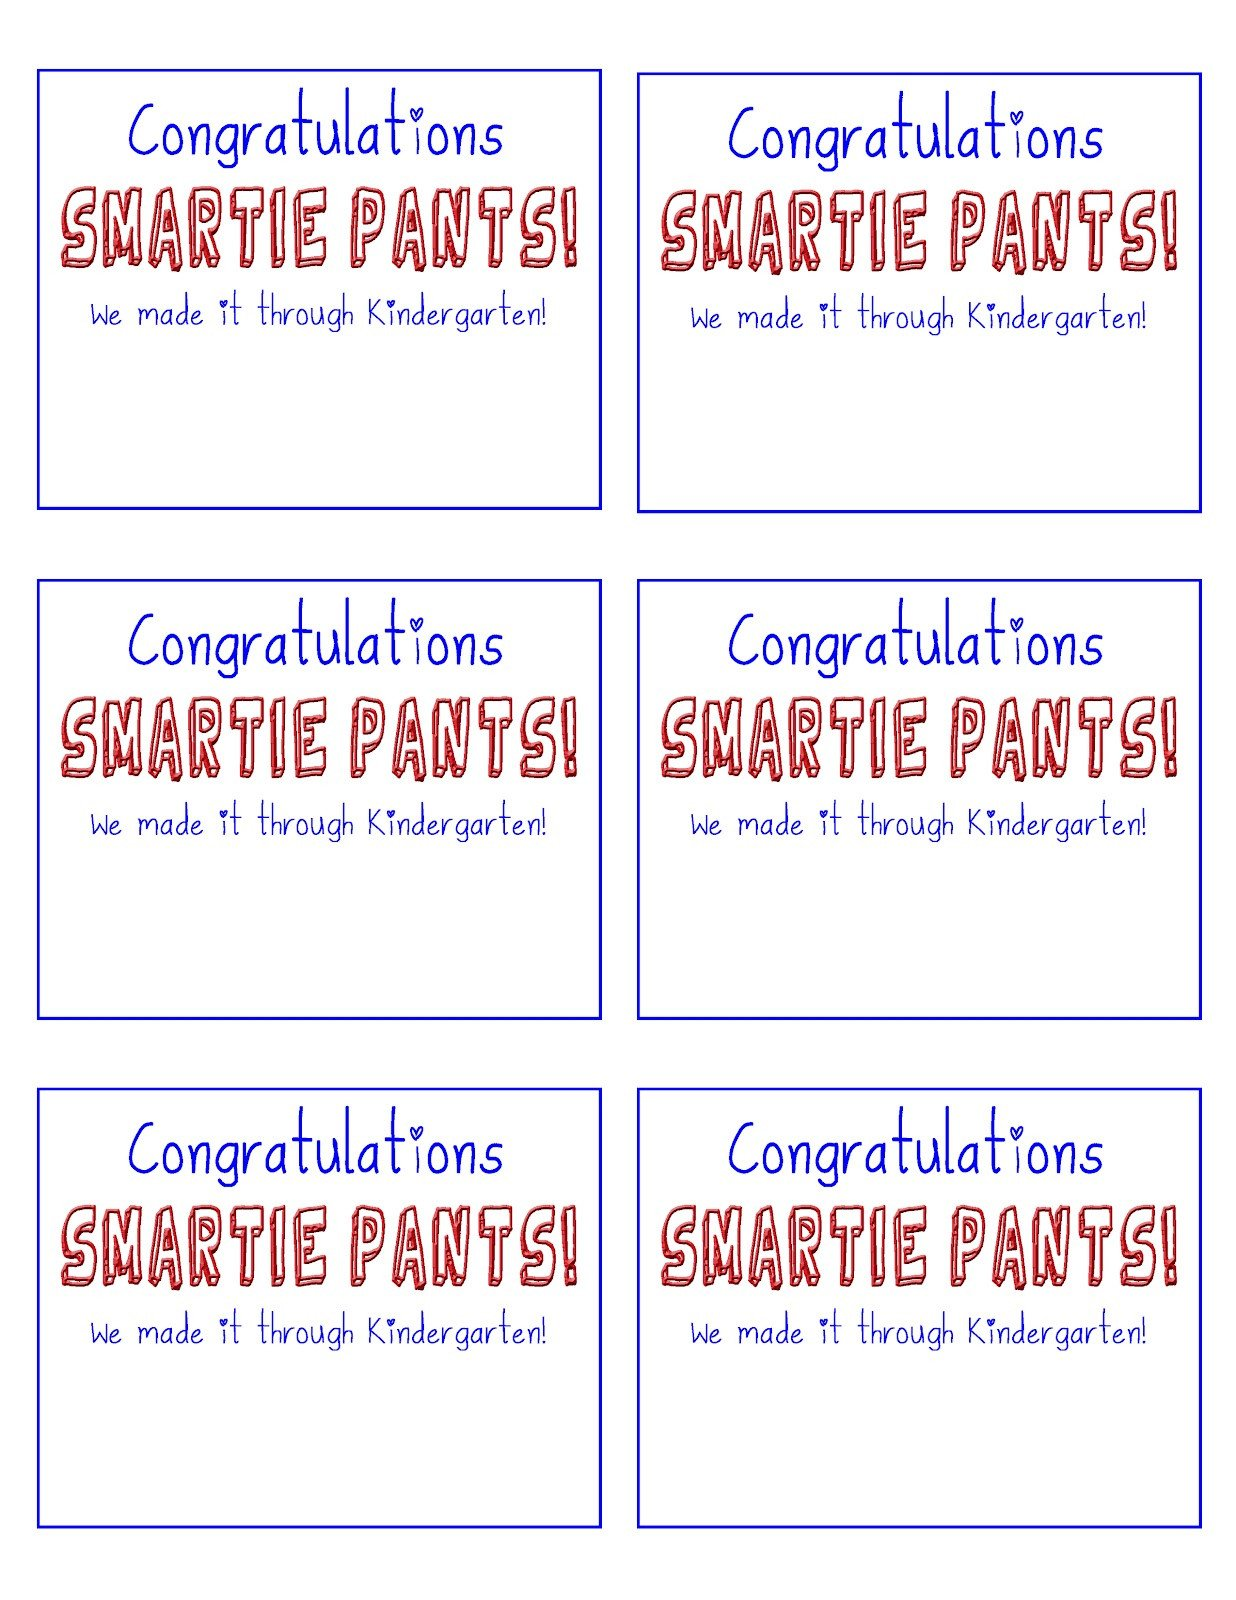 Smartie Pants Printable Template Gummy Bears and Pony Tails Gifts for Kindergarten Classmates